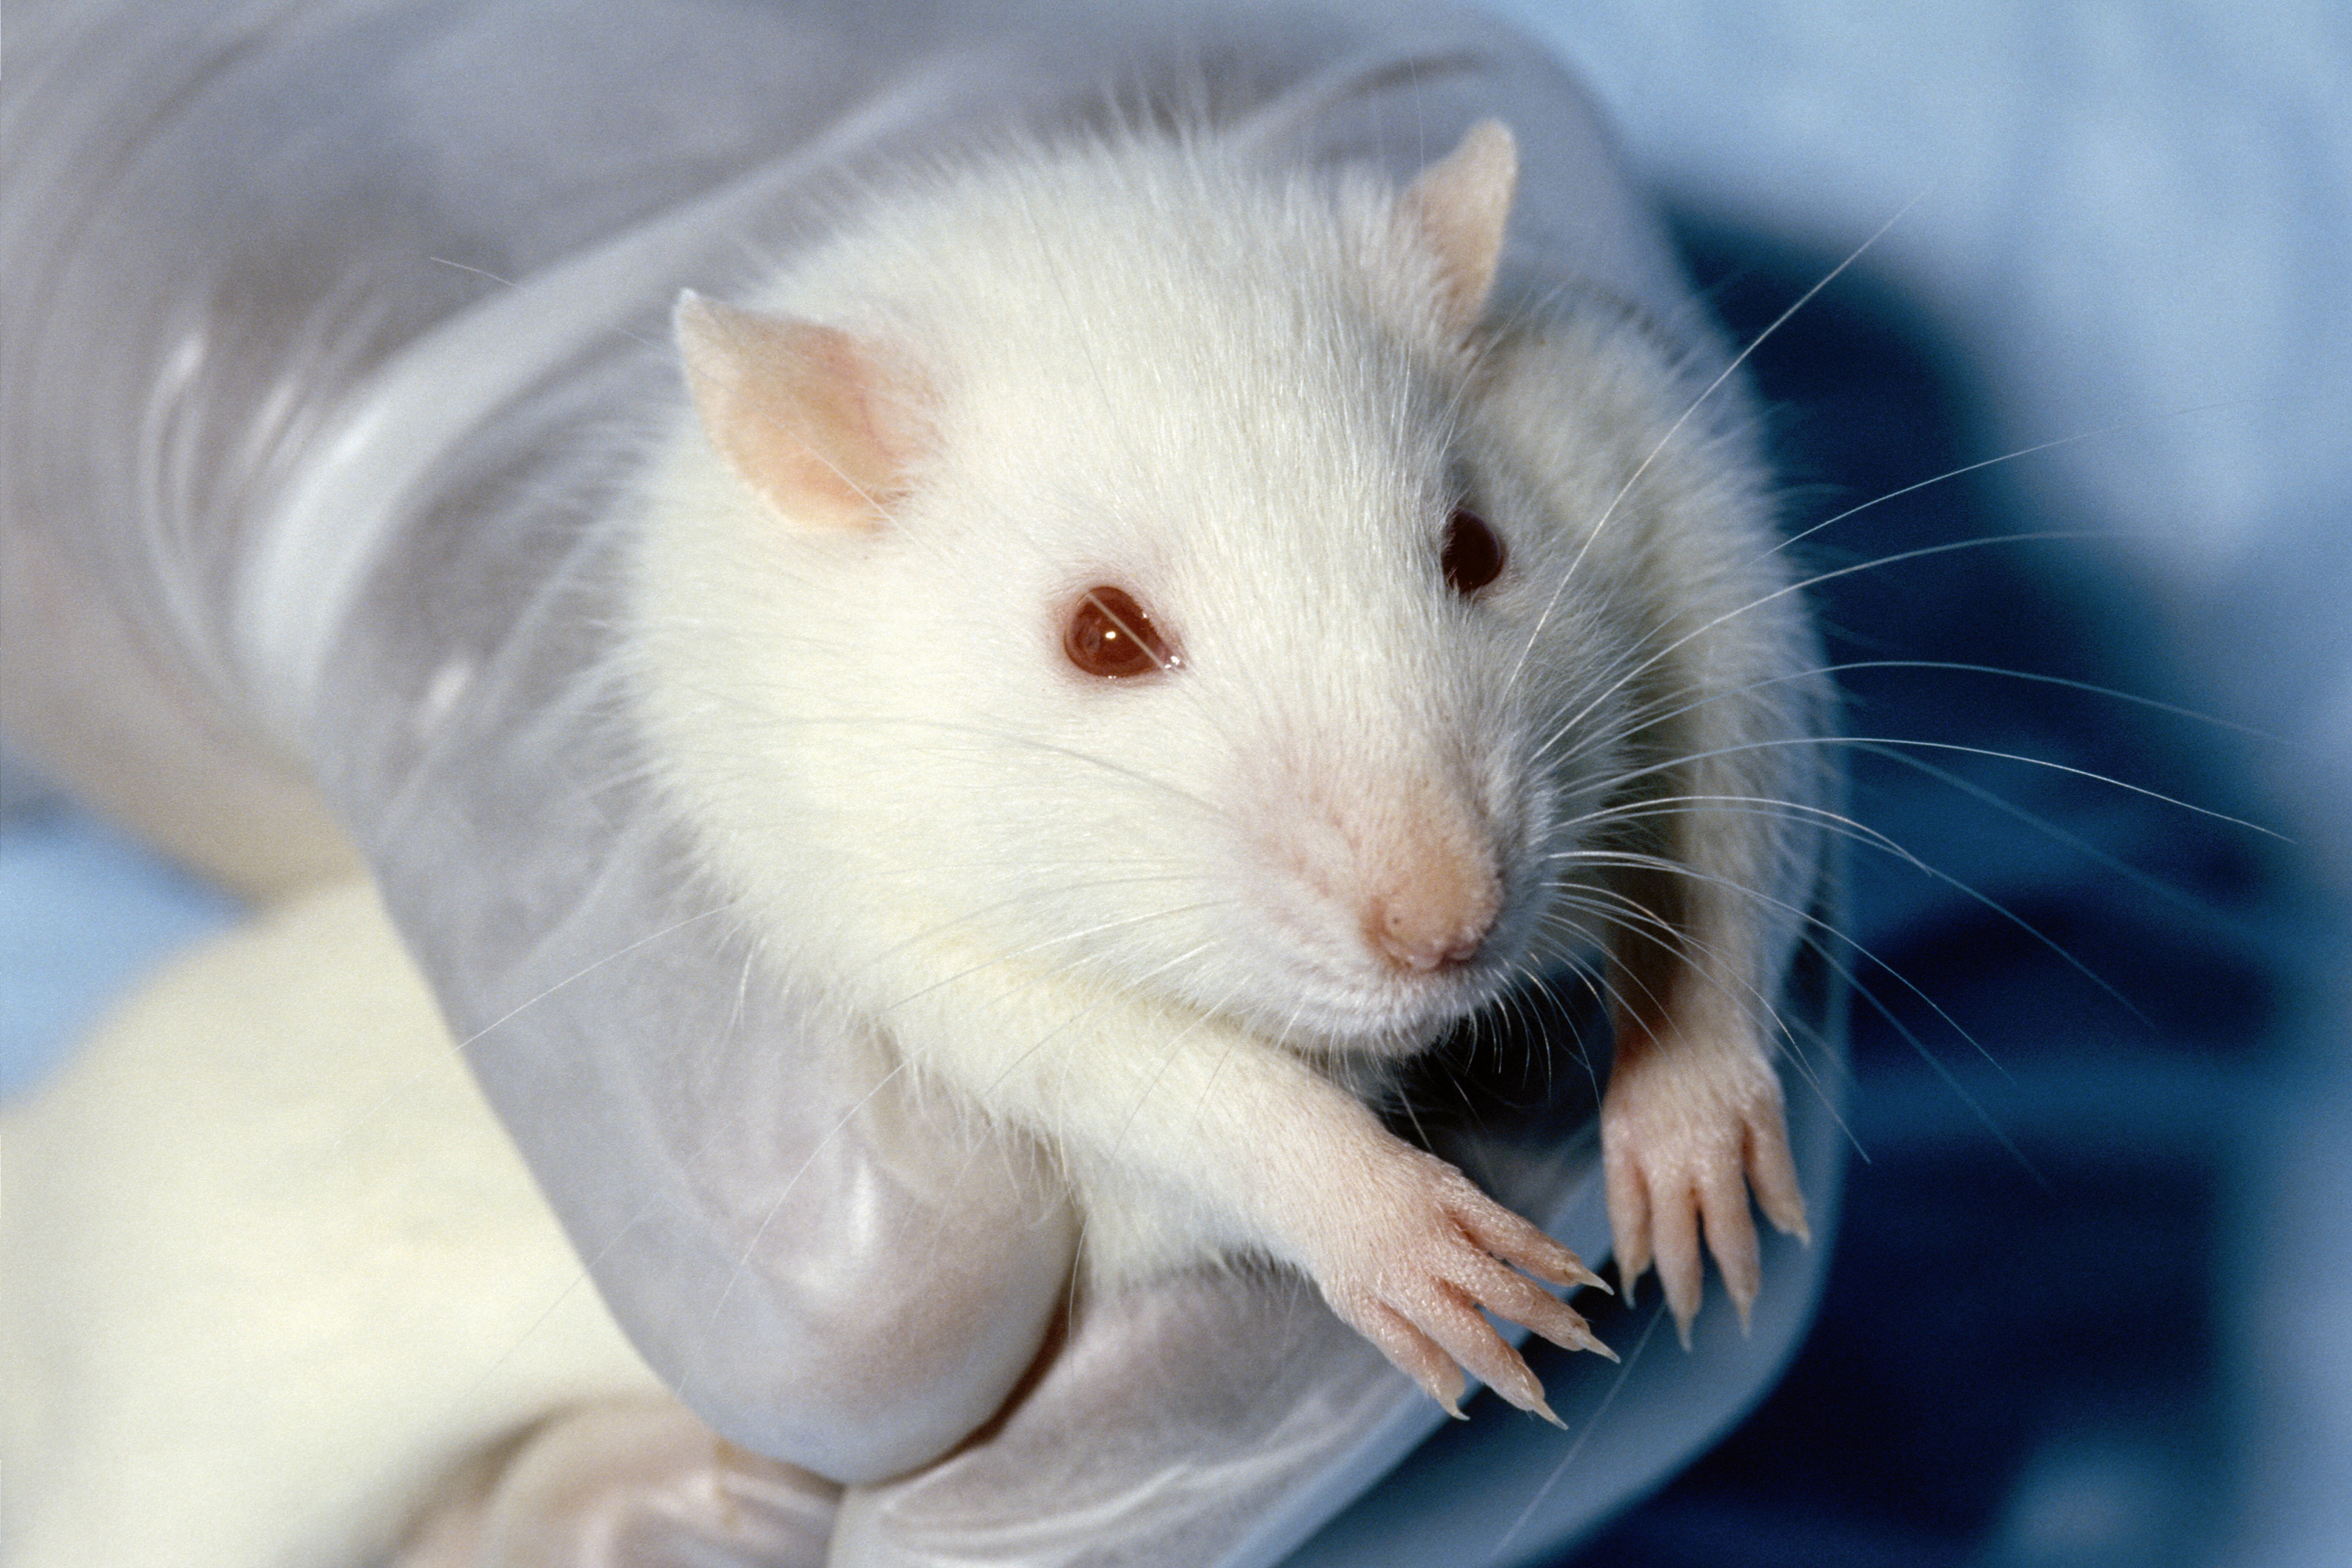 lab mouse pictures - HD2700×1800